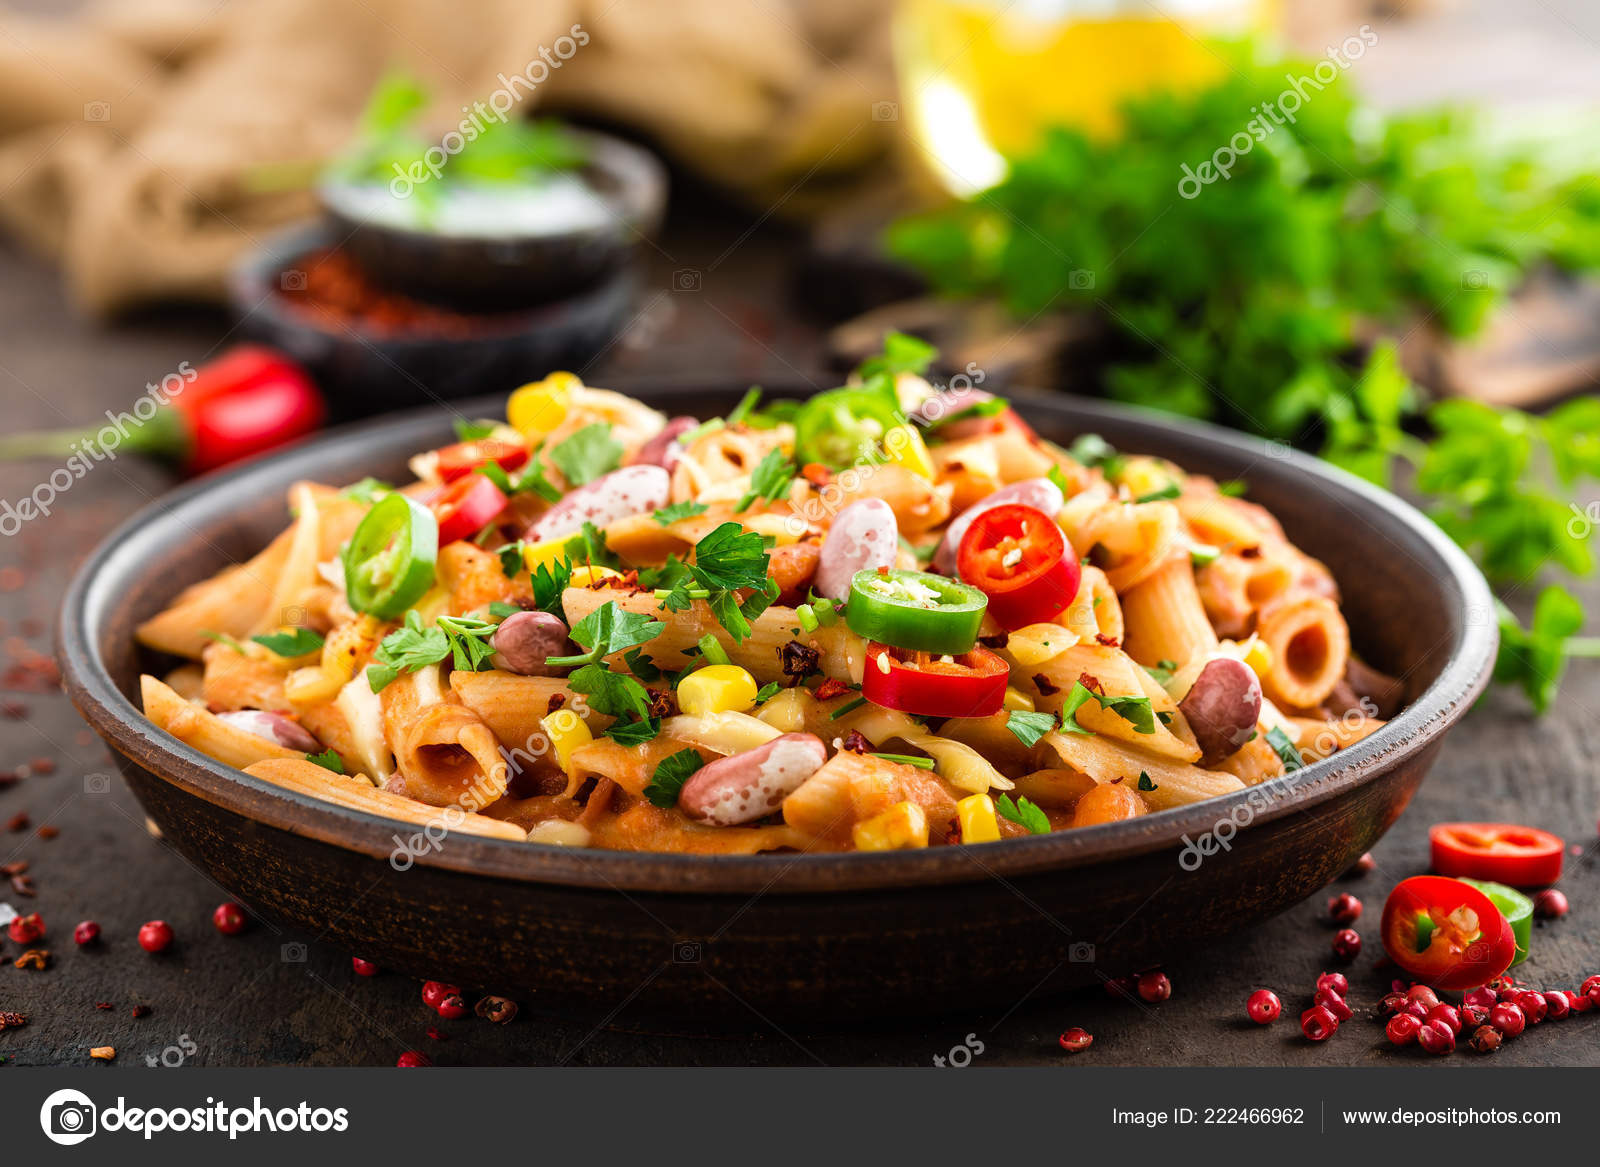 f4cf93975 Spicy Pasta Penne Bolognese Vegetables Beans Chili Cheese Tomato Sauce —  Stock Photo